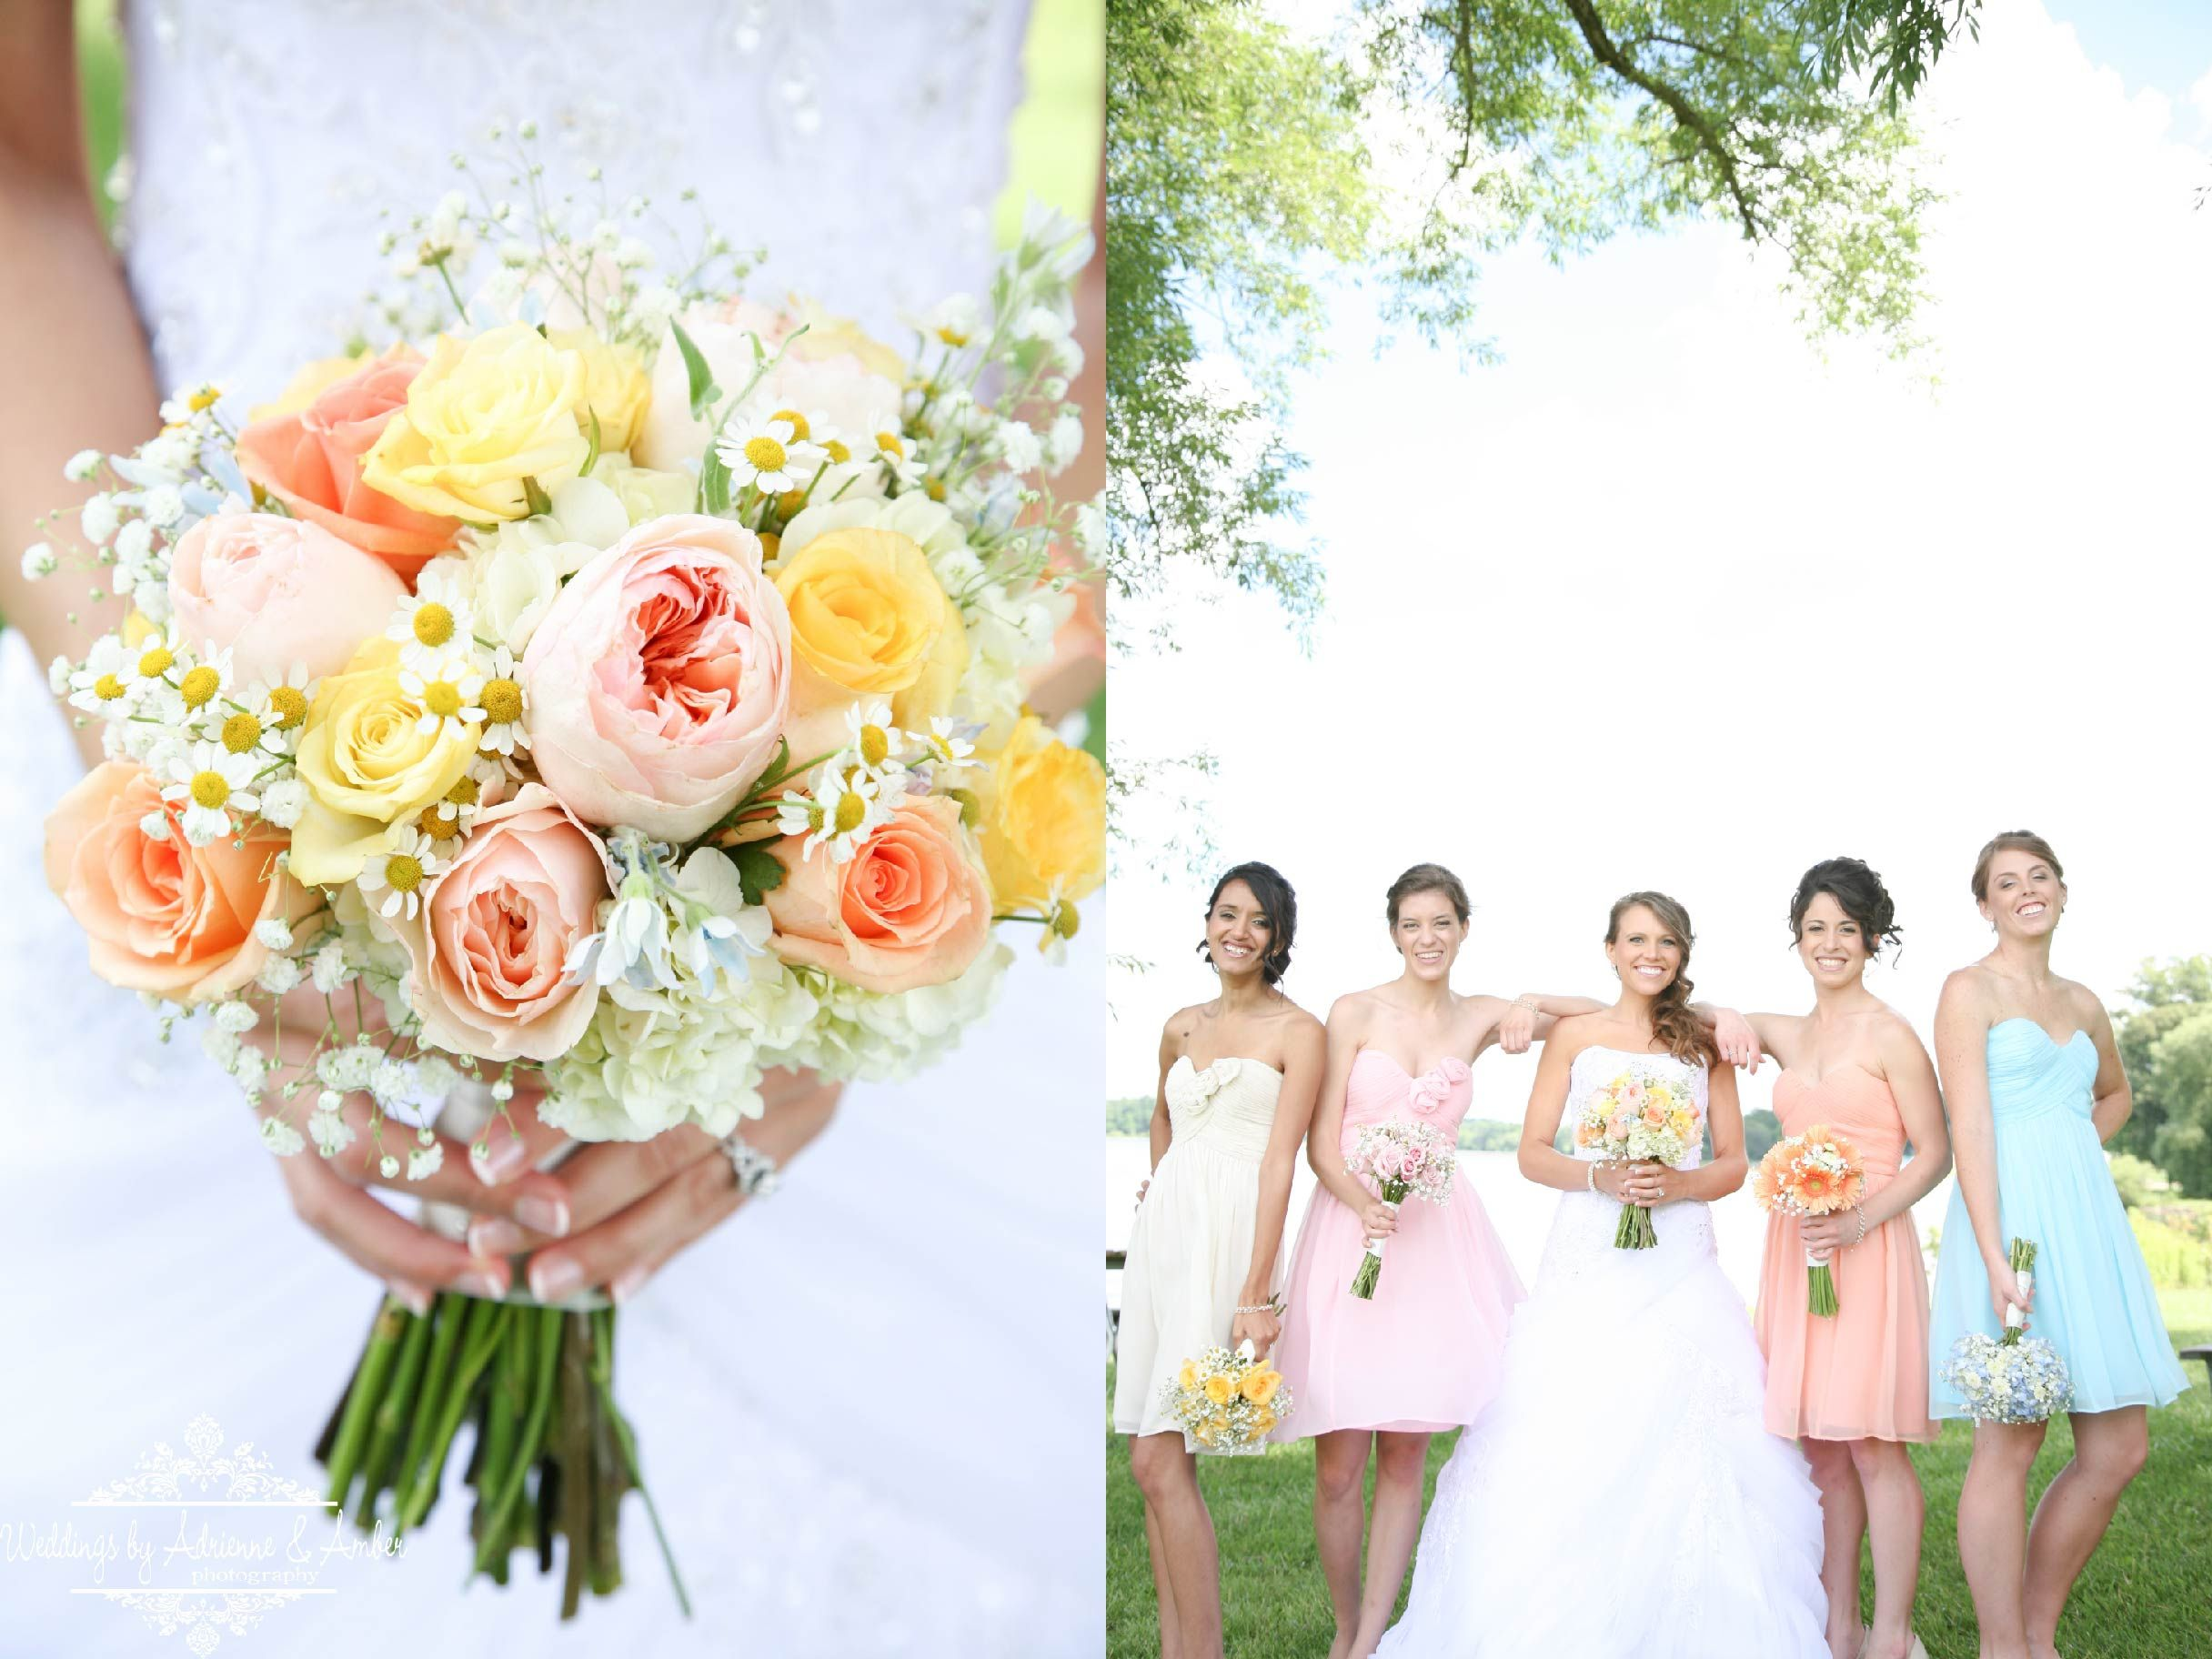 Royal Oak Wedding Photography-Weddings by Adrienne & Amber #spring #color #pastel #bouquet #bridesmaid #dresses #photography #royaloak #detroit #bride #spring #summer #cute #color